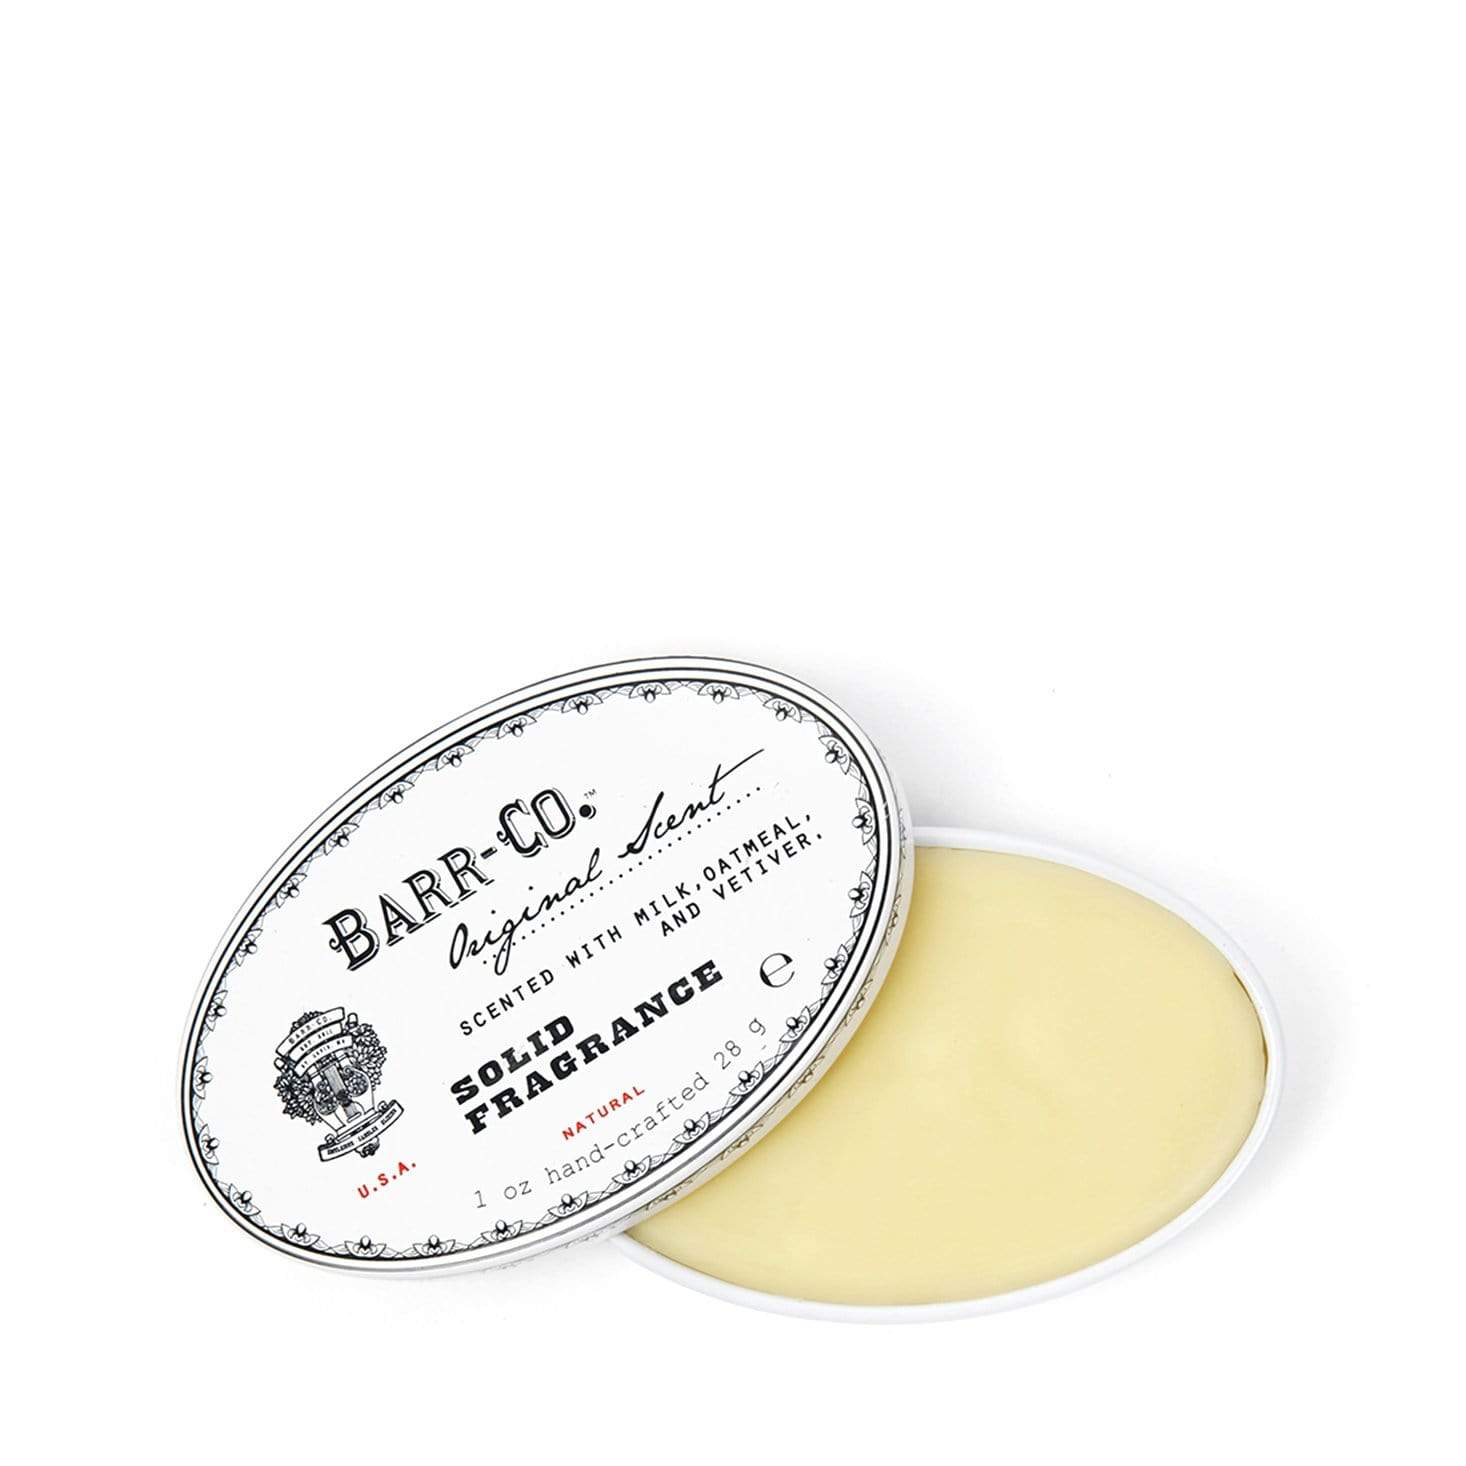 Barr-Co Original Solid Perfume